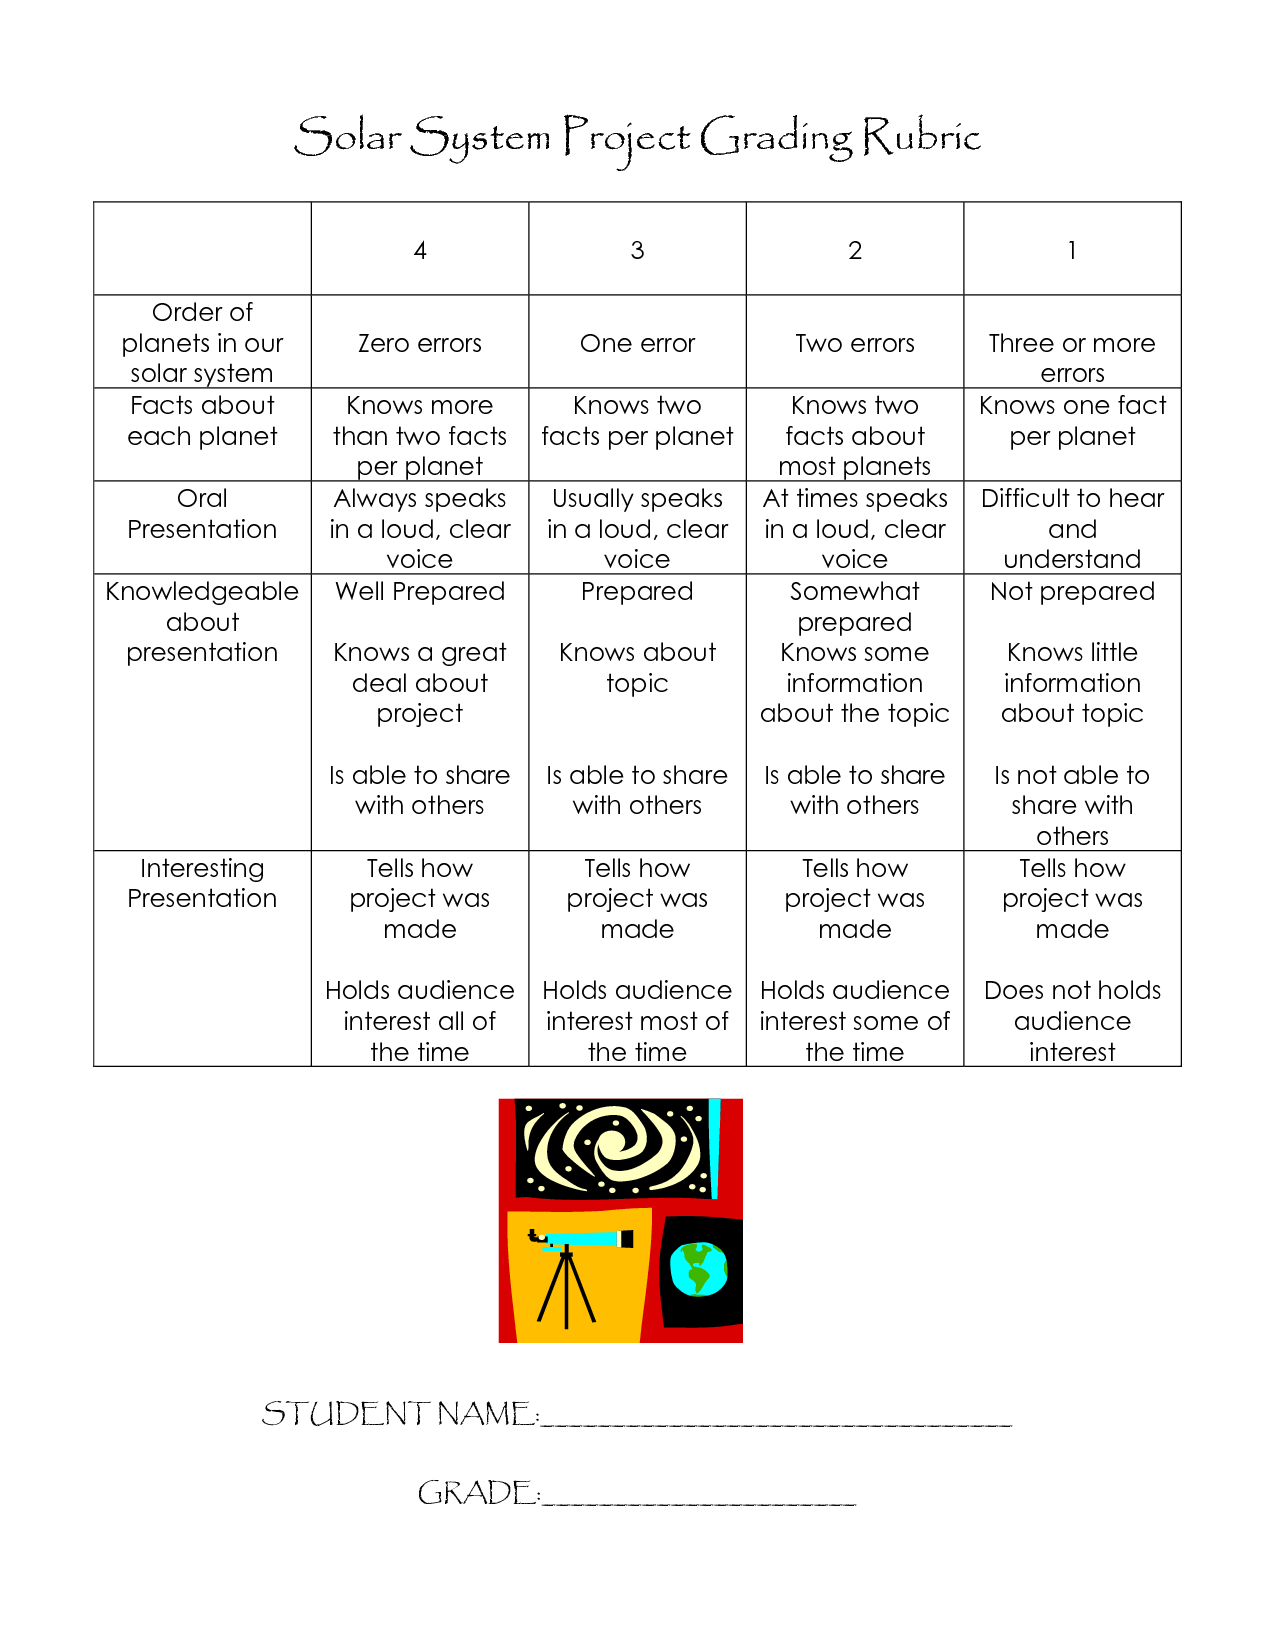 Solar system project rubric solar system project grading rubric solar system project rubric solar system project grading rubric doc ccuart Choice Image